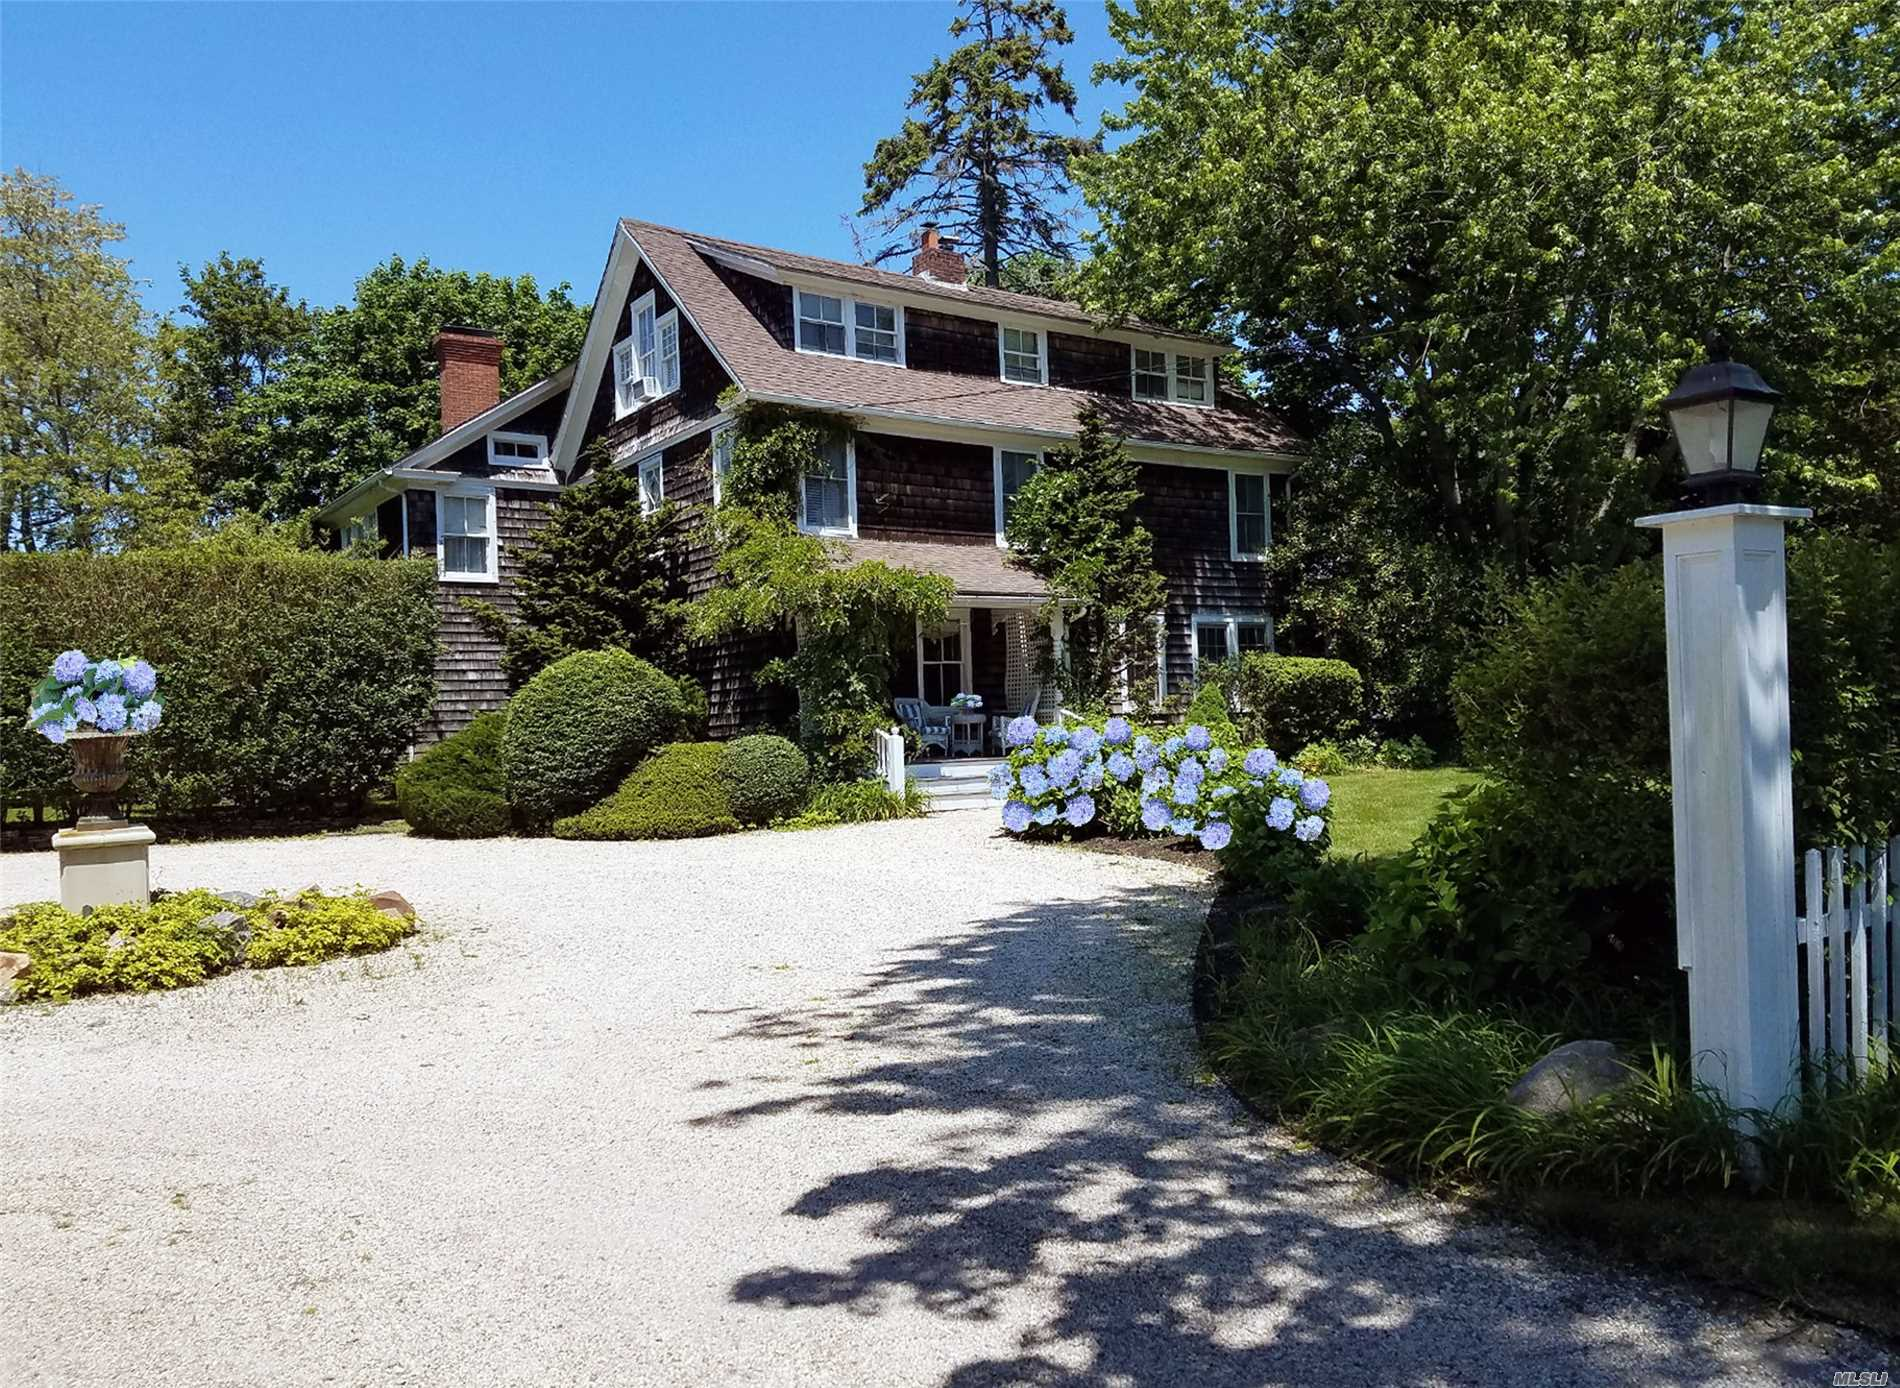 Rare Southampton Village Income Producing Opportunity! Fully Permitted Legal Short Term Stay No 2 Week Minimum Rental Requirements, Bed & Breakfast.Priced To Sell! 'Hill Street' 4400 Sq Ft Hamptons Classic Charmer Corner Lot On Just Shy Acre W' Salt Water Pool. Ideally Situated - Heart Of The Village Nearby To Ocean Beaches, Golf, Clubs & Village Amenities! Embrace Its' Character & Great Vibe, Expand & Or Create Lux B&B/Rental Property In This Choice Spot. Great N.Y.C. Commute!